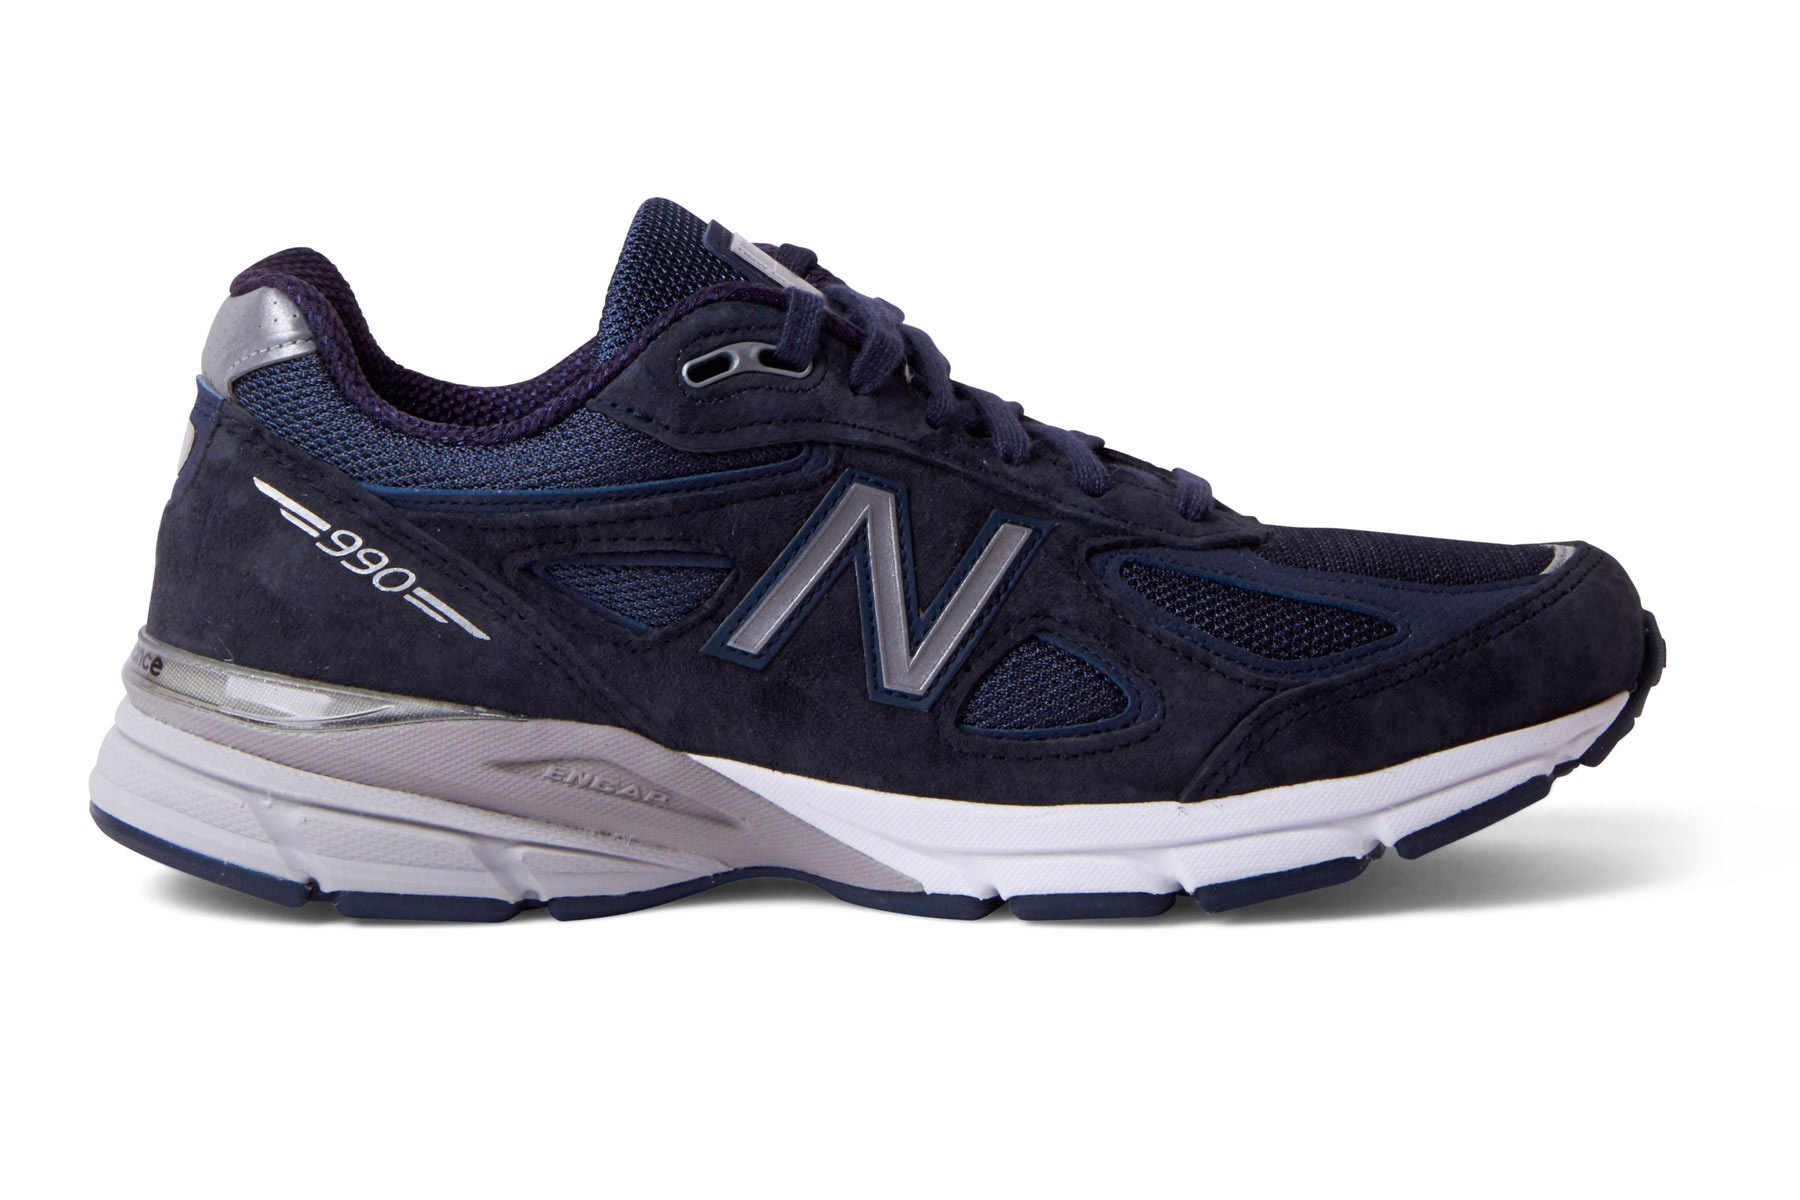 New Balance Mens Running Course Economical, stylish, and eye-catching shoes